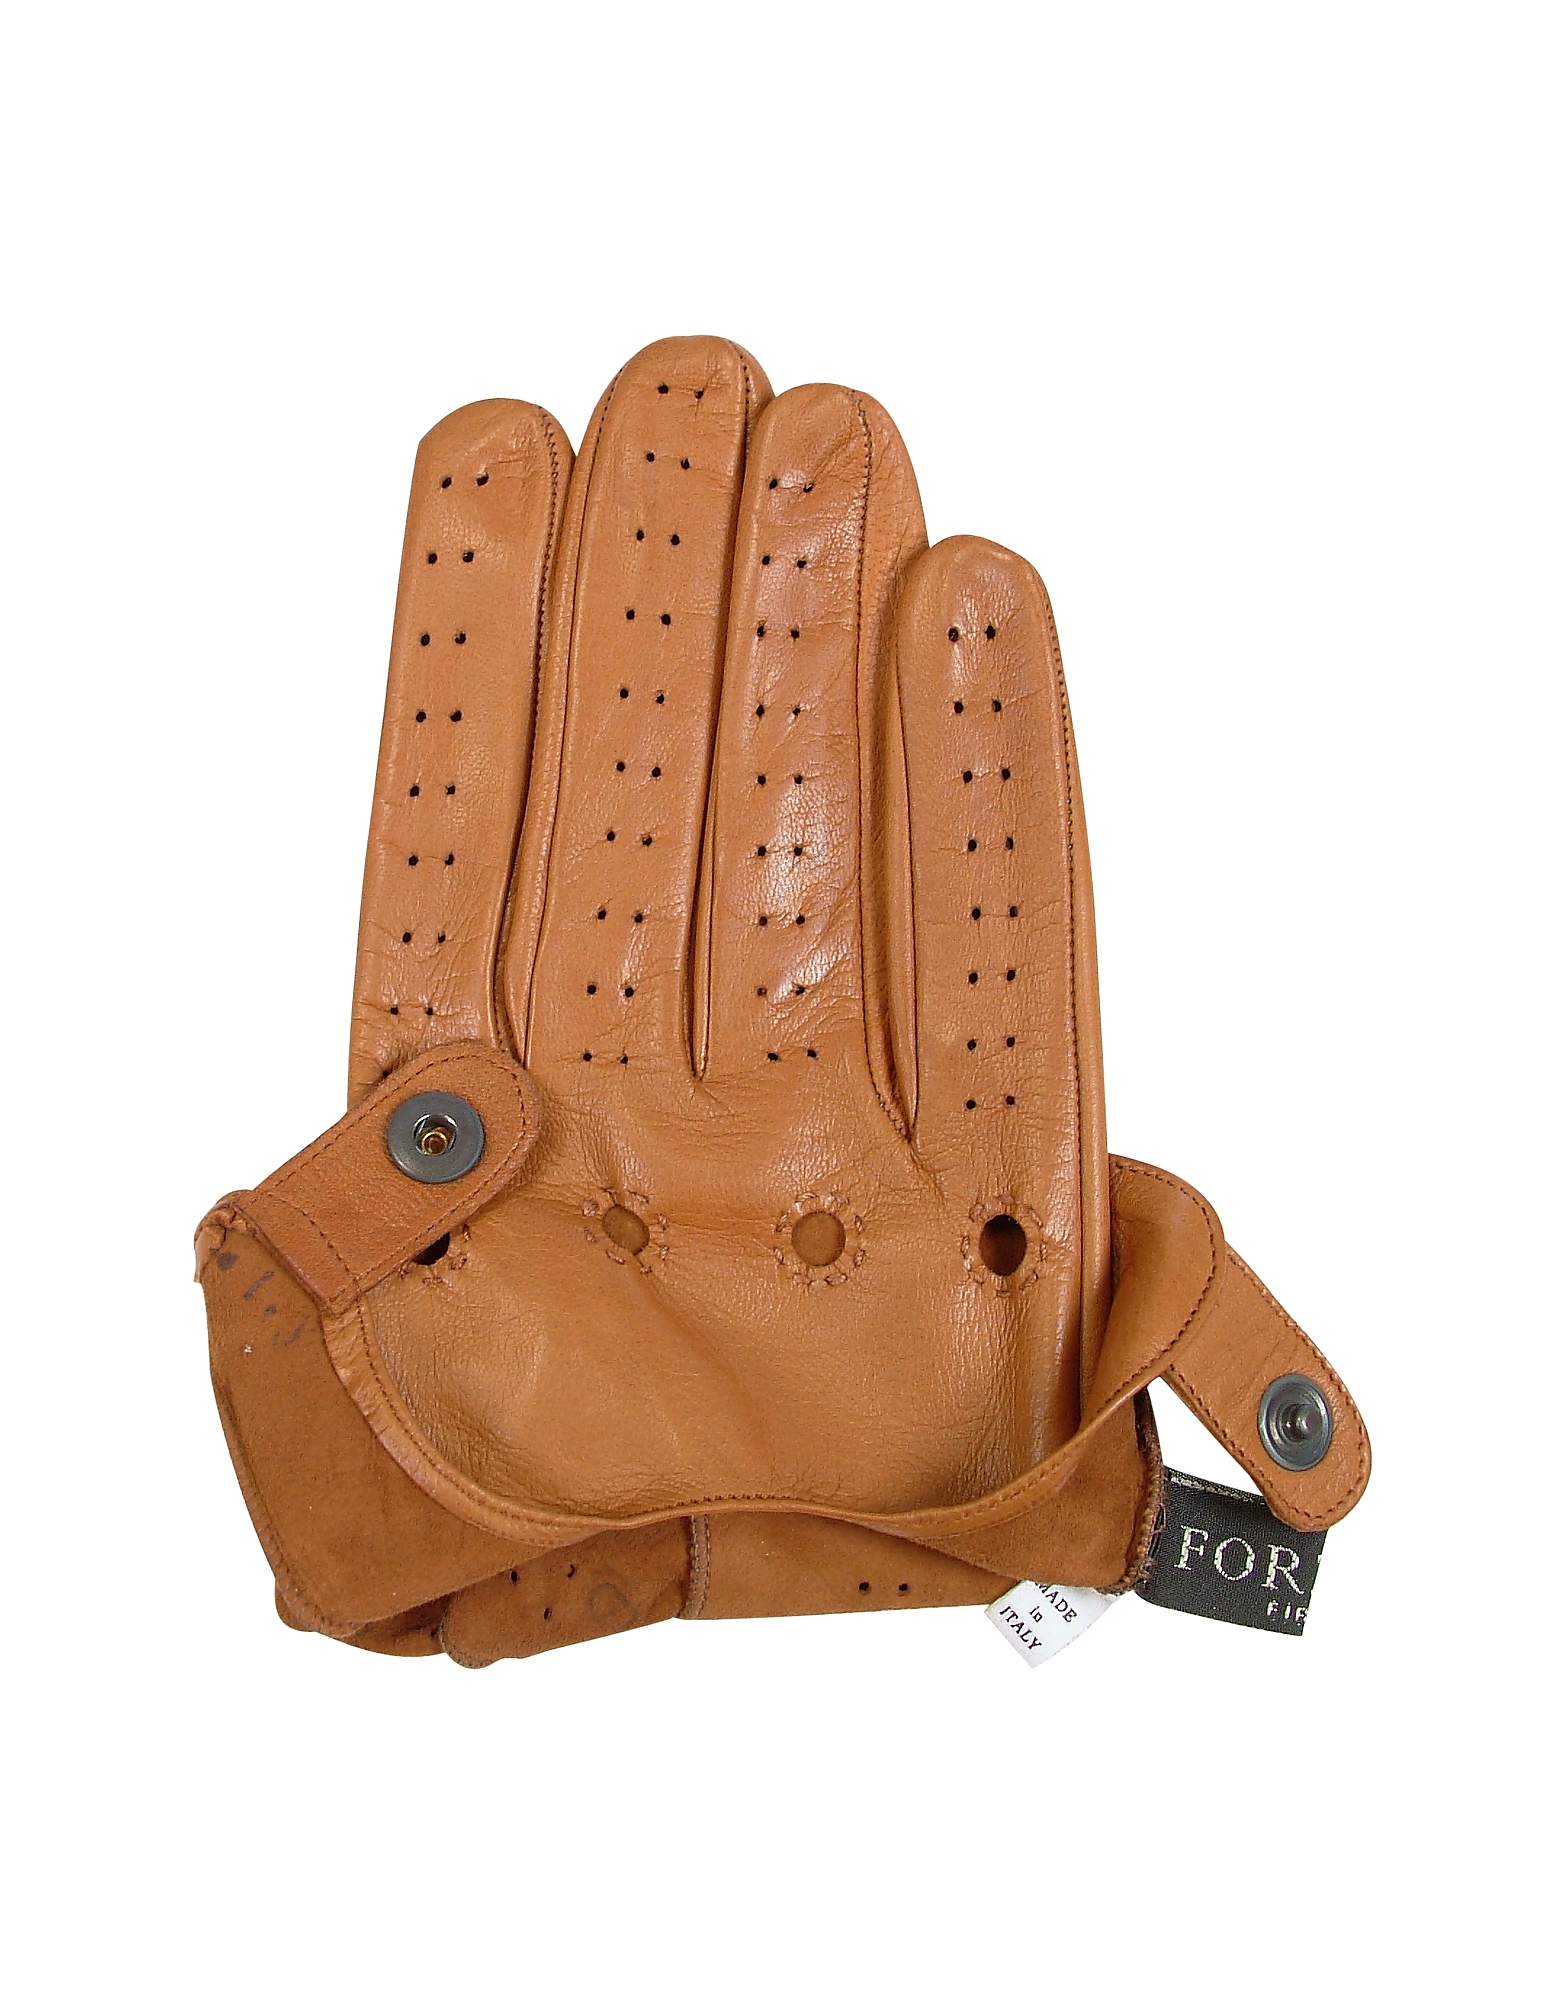 Men's Tan Italian Leather Driving Gloves от Forzieri.com INT